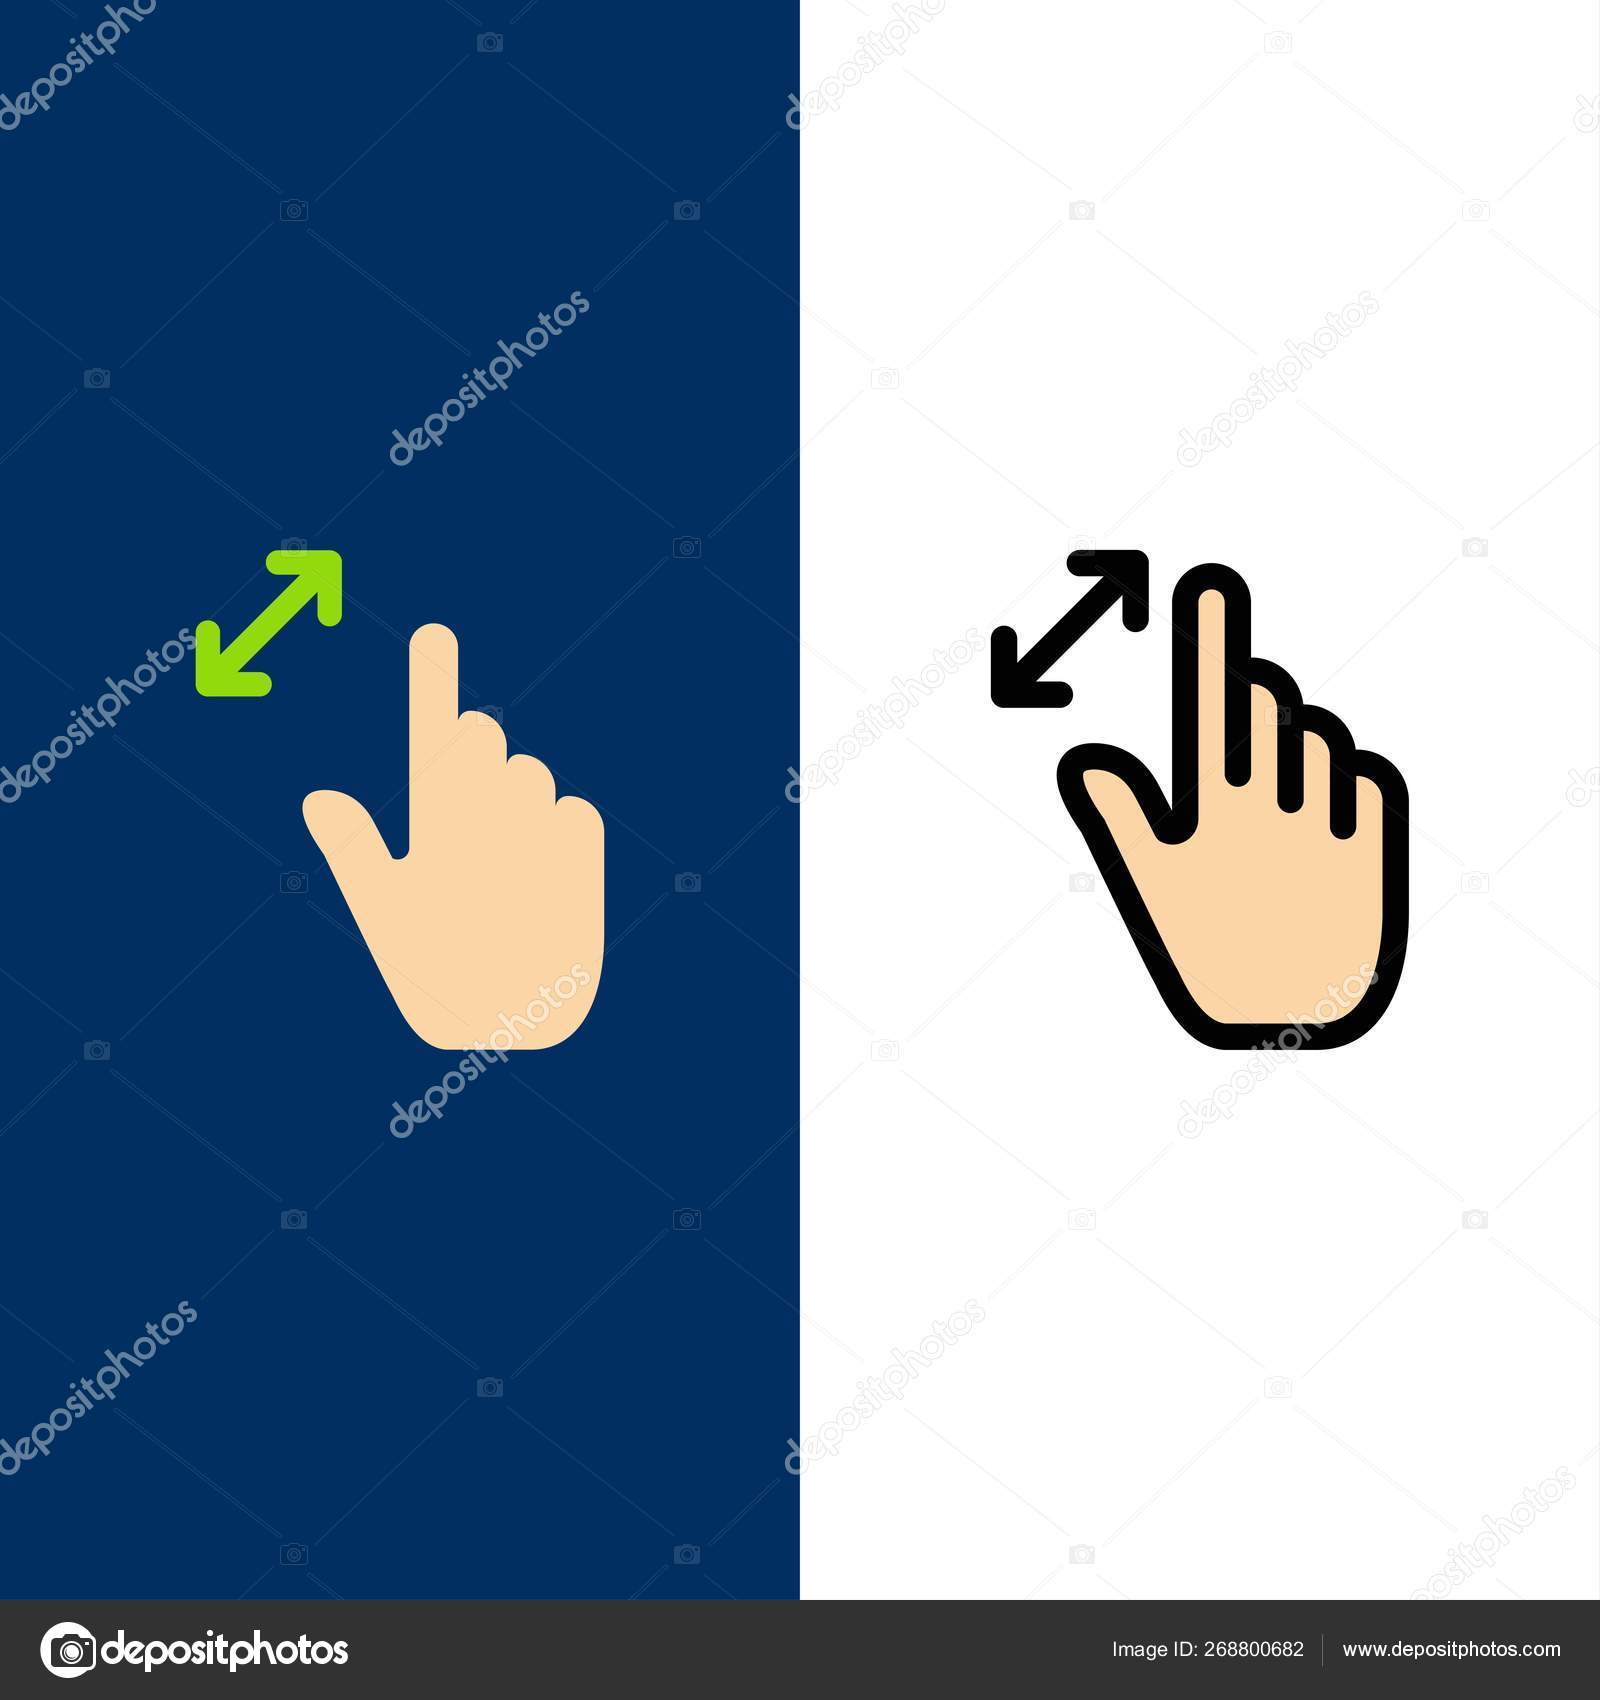 Expand, Gestures, Interface, Magnification, Touch Icons